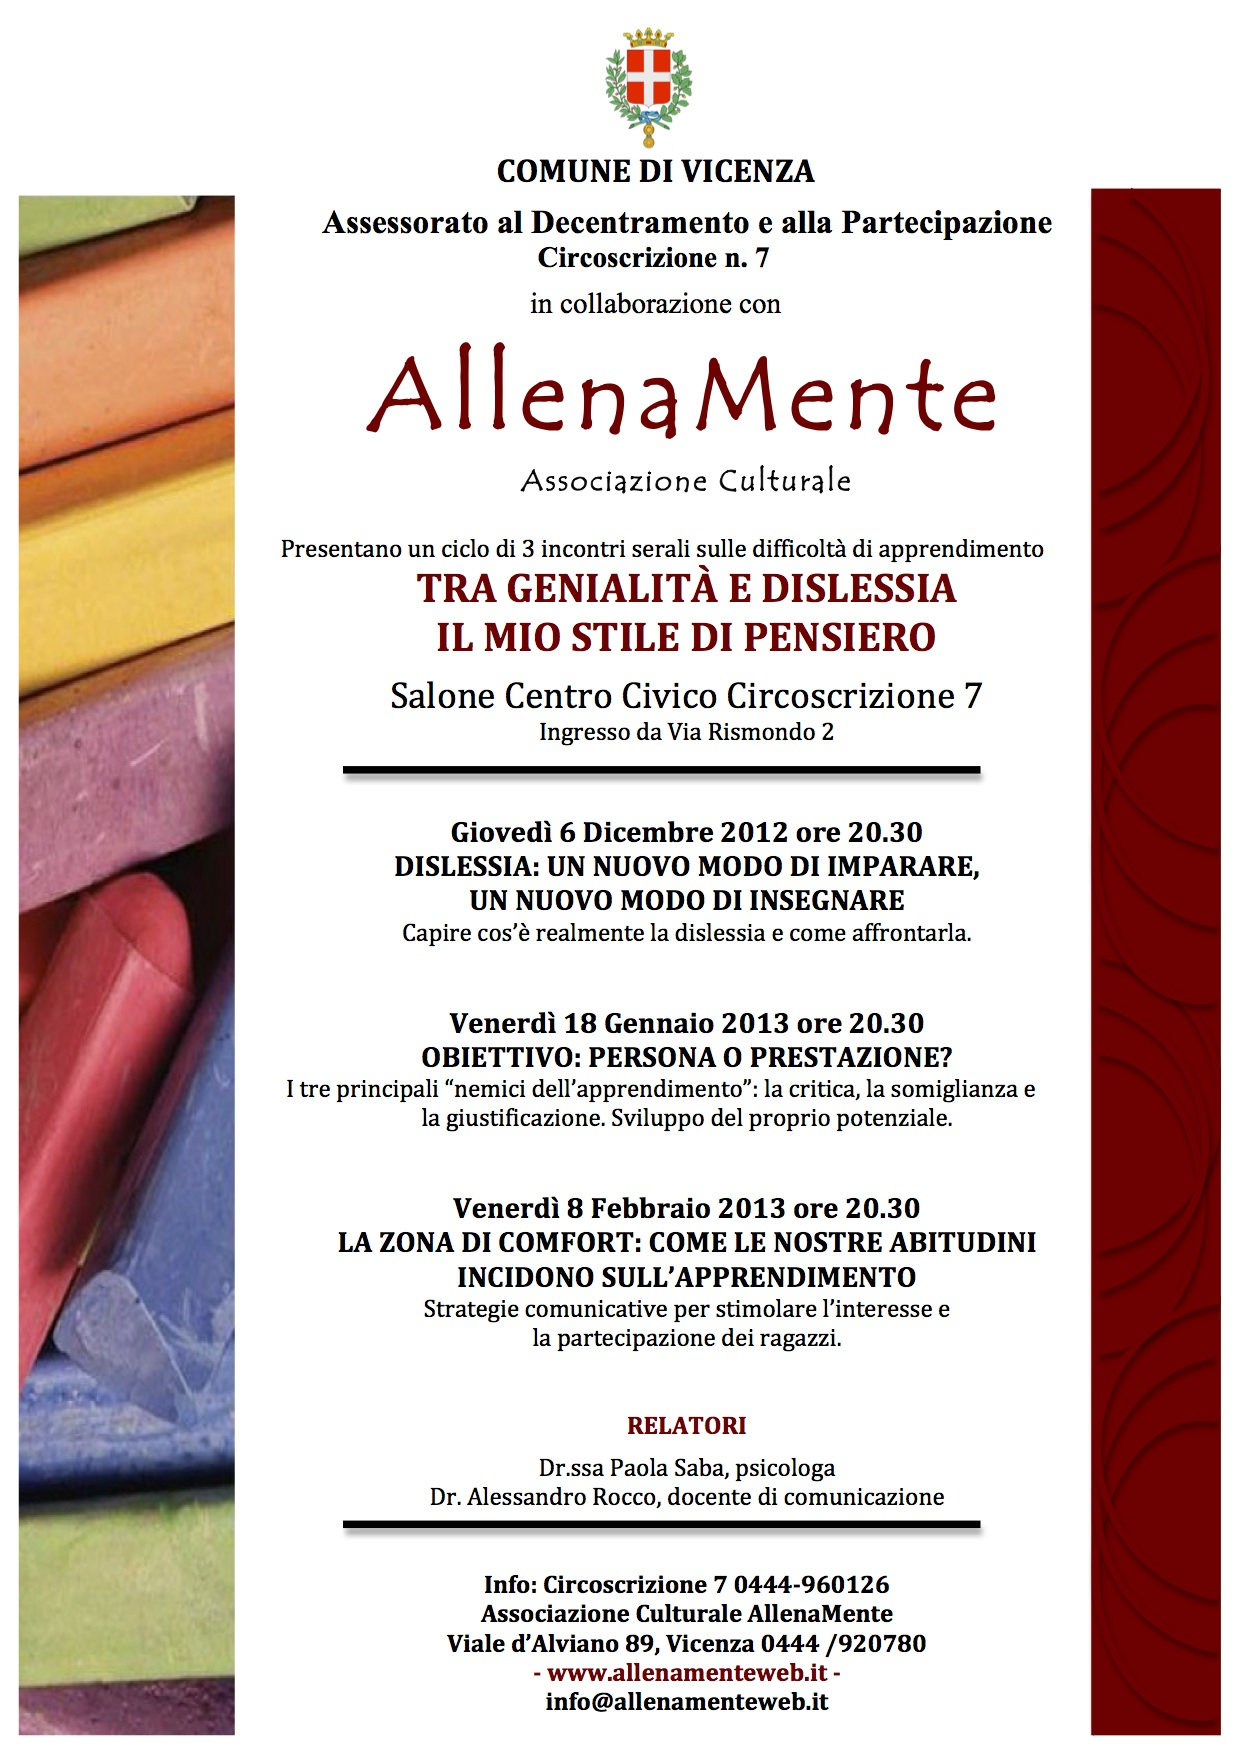 AllenaMente_comune_vicenza